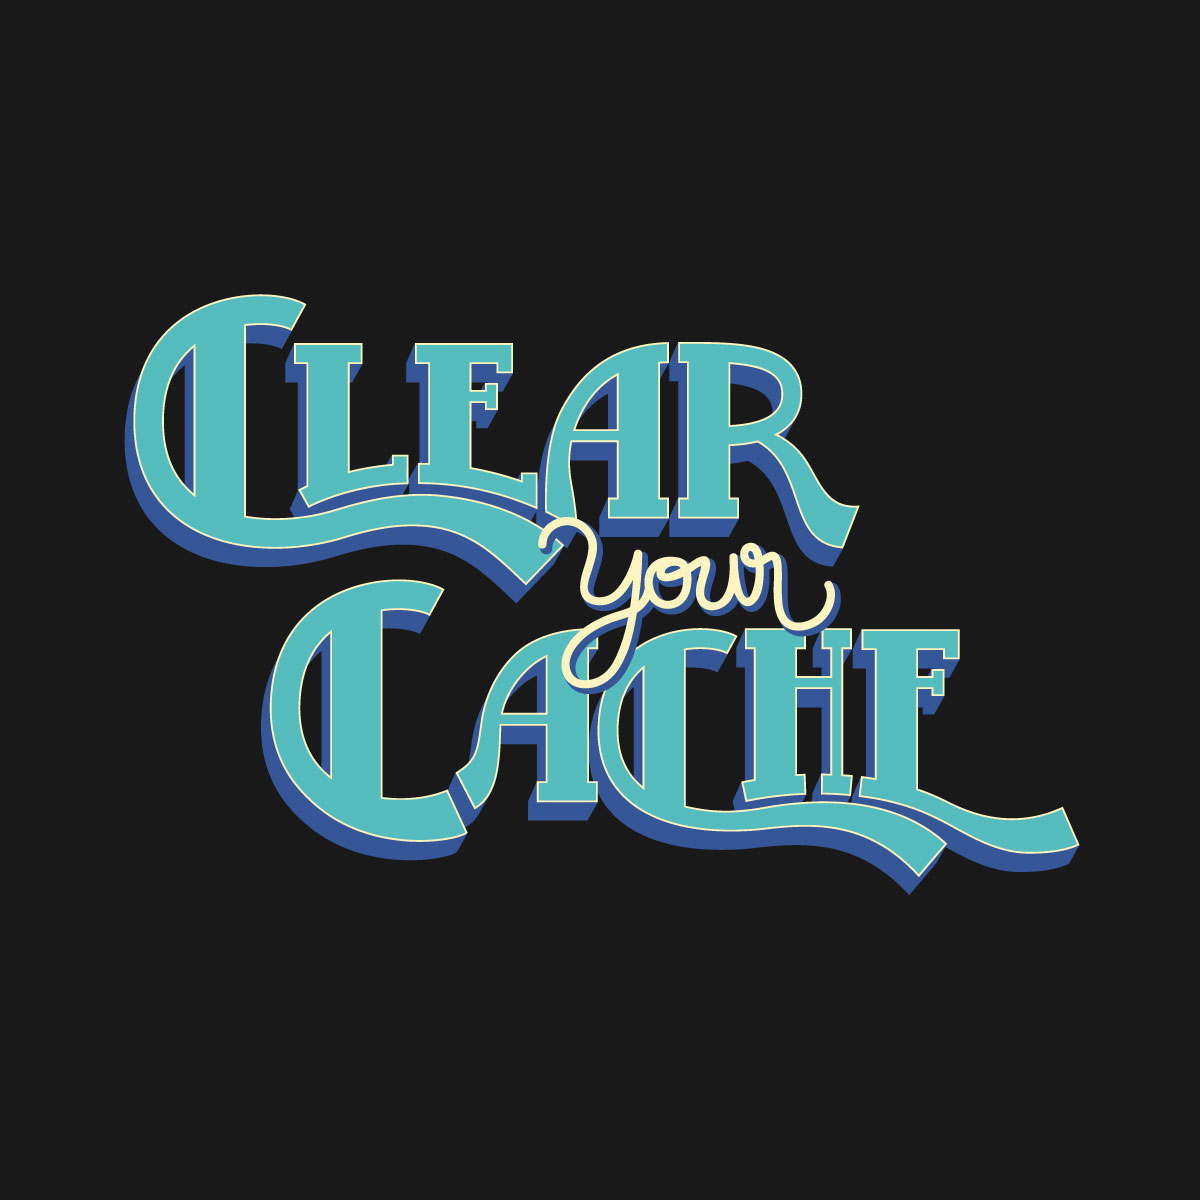 Clear Your Cache t-shirt